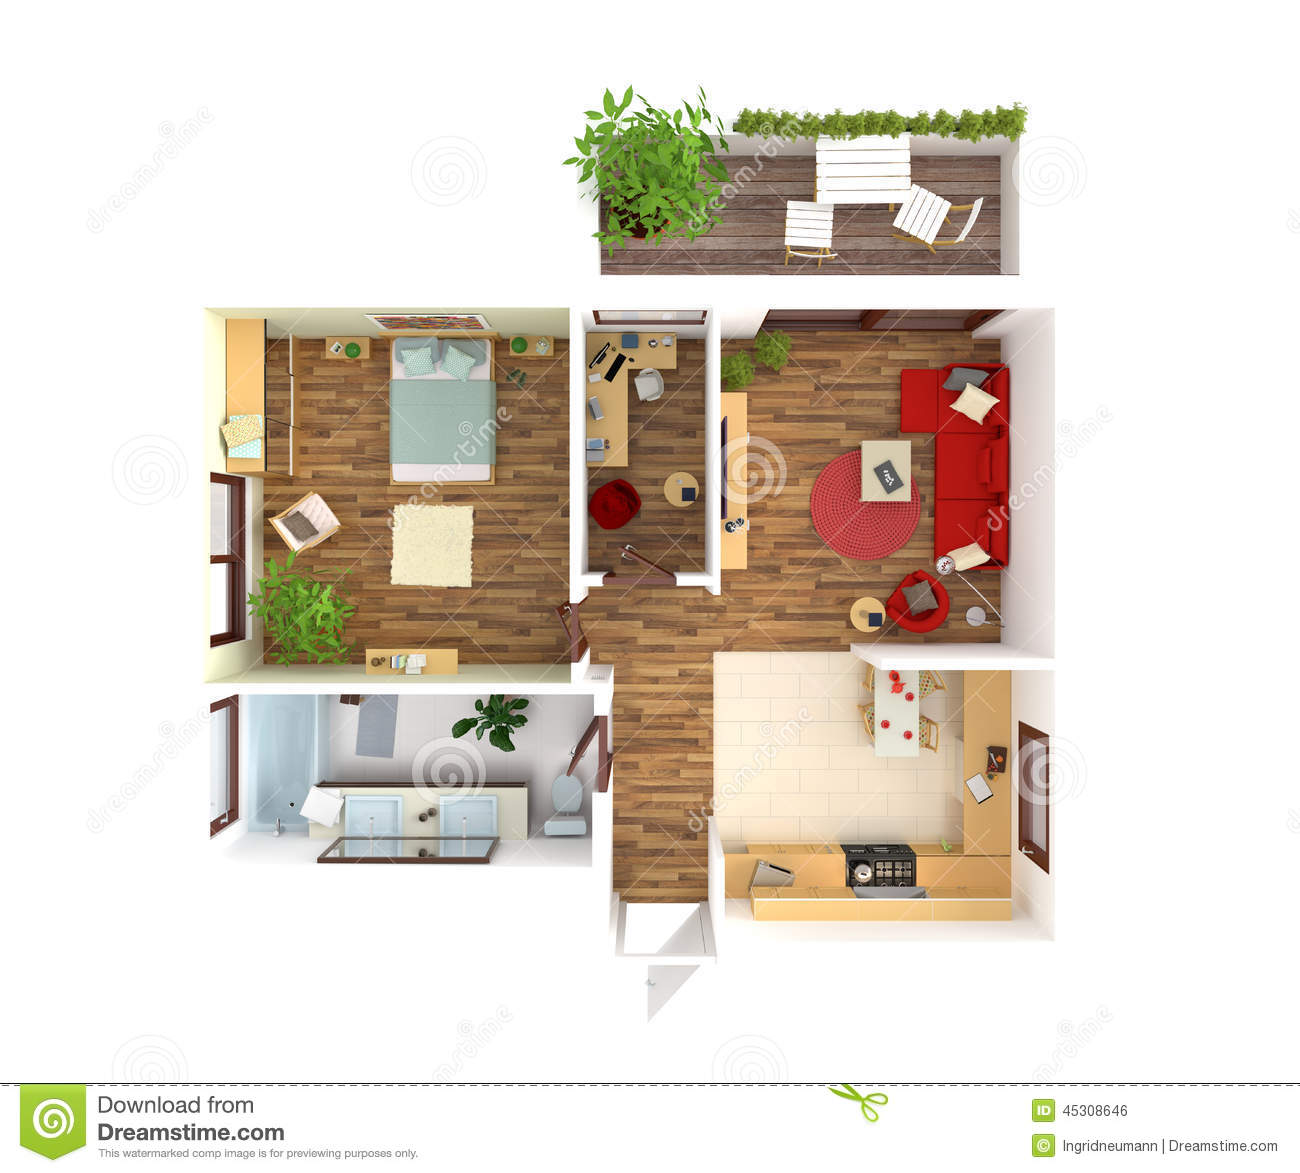 House plan top view interior design stock illustration for How to design house interior